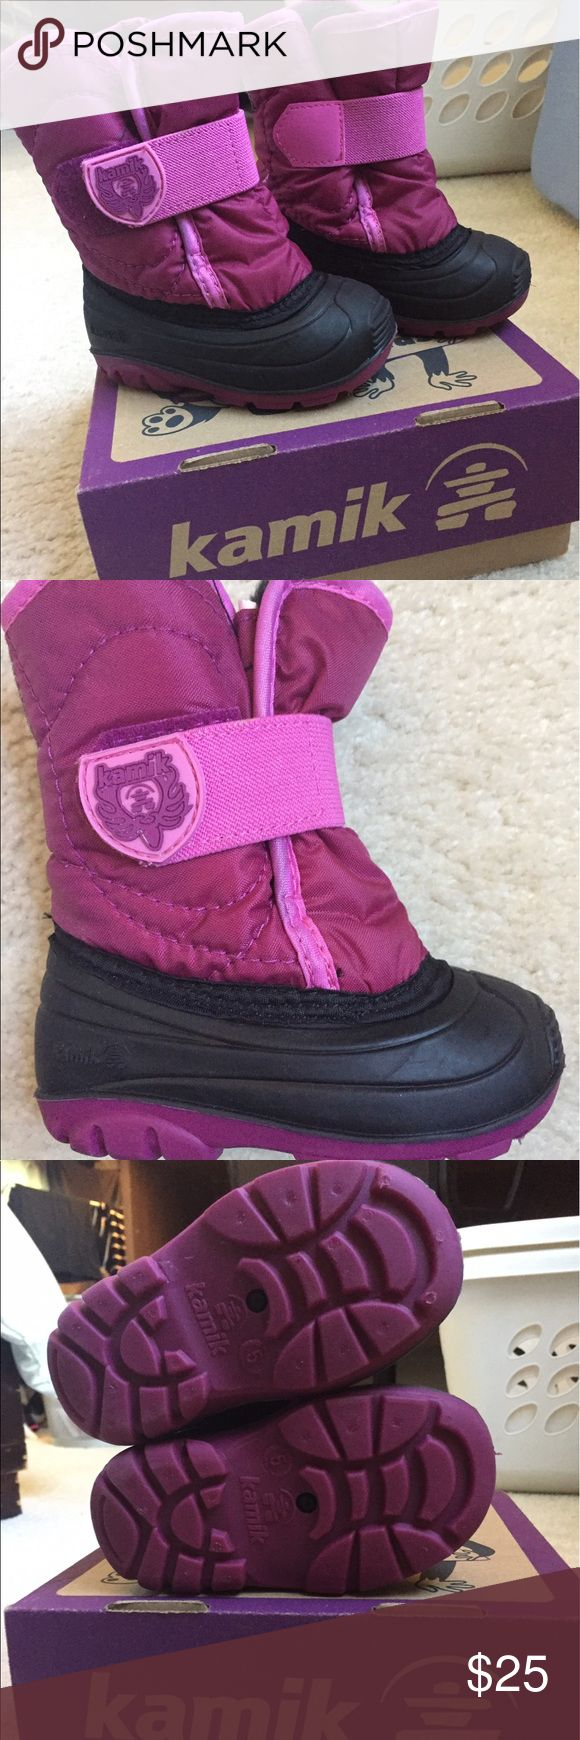 Kamik toddler girls winter snow boots, size 5 Worn once before growing out of them. High quality snow boot purchased at REI Kamik Shoes Rain & Snow Boots